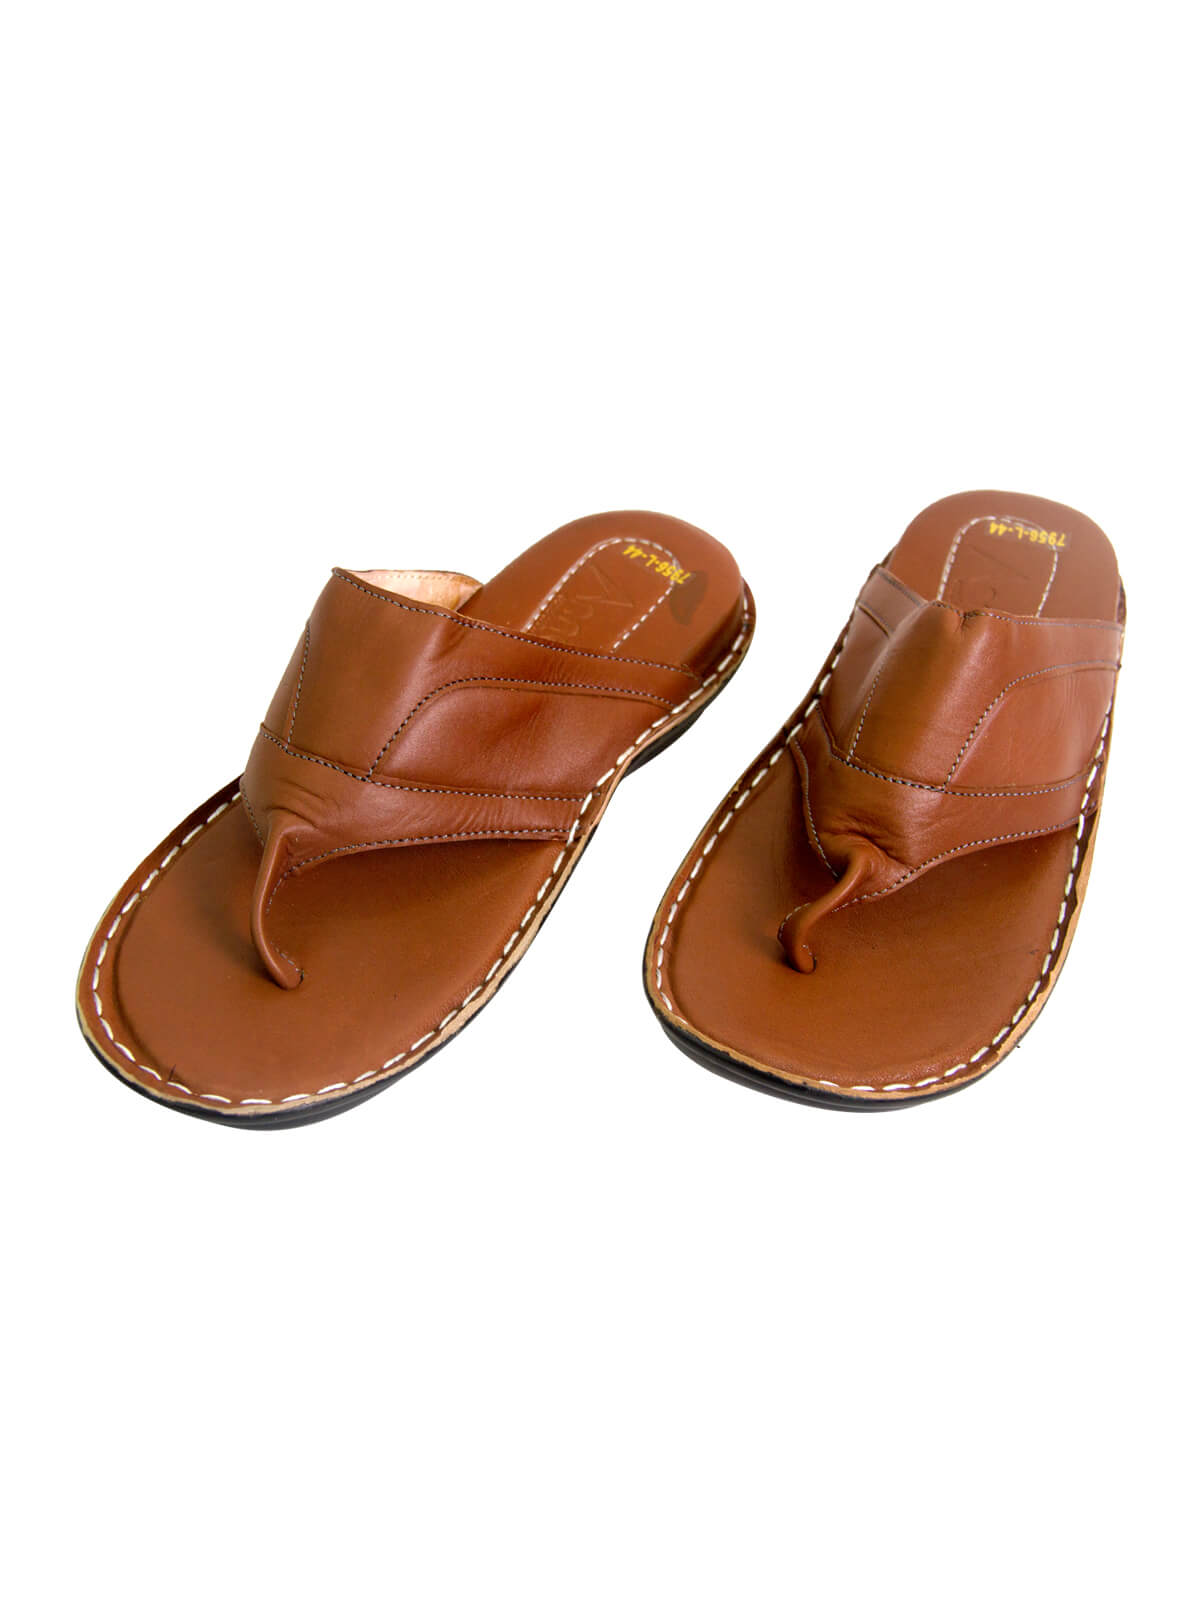 Russet Brown Gent's Leather Sandal